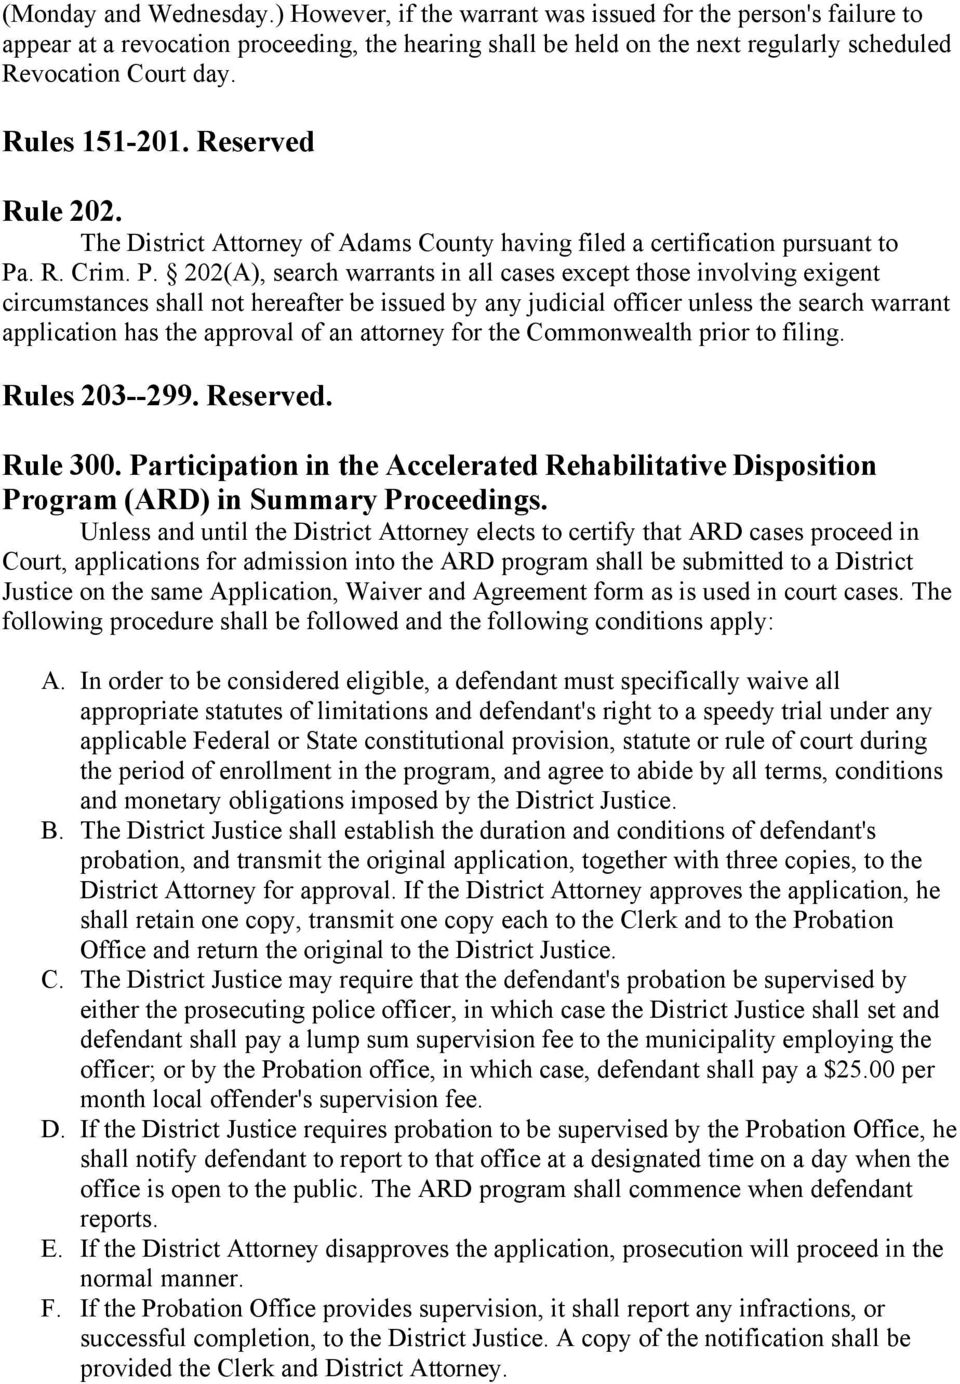 Adams County Pa Court Forms